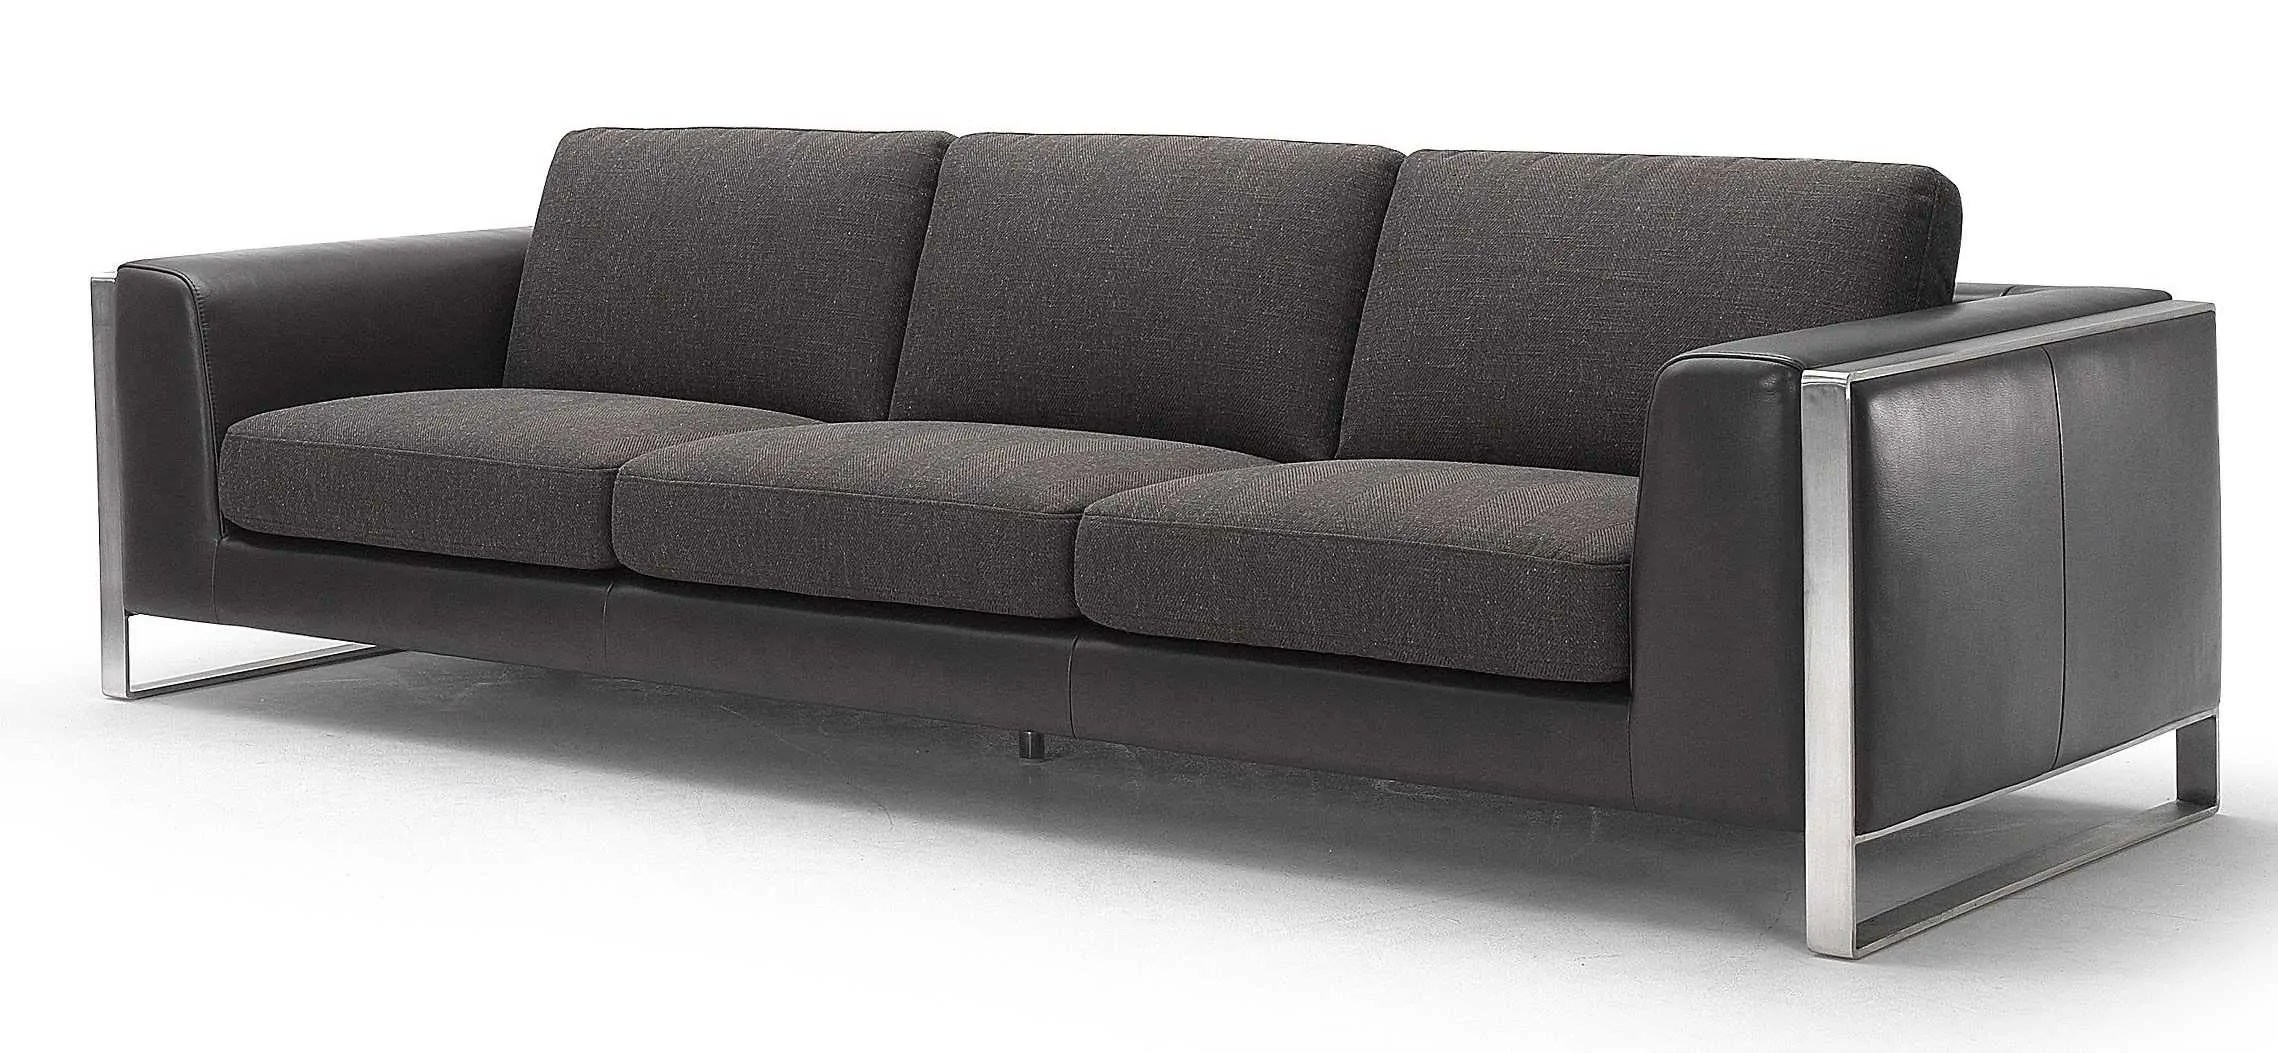 Sofa Modern Design Modern Sofa The Top Trending Furniture Decoration Channel